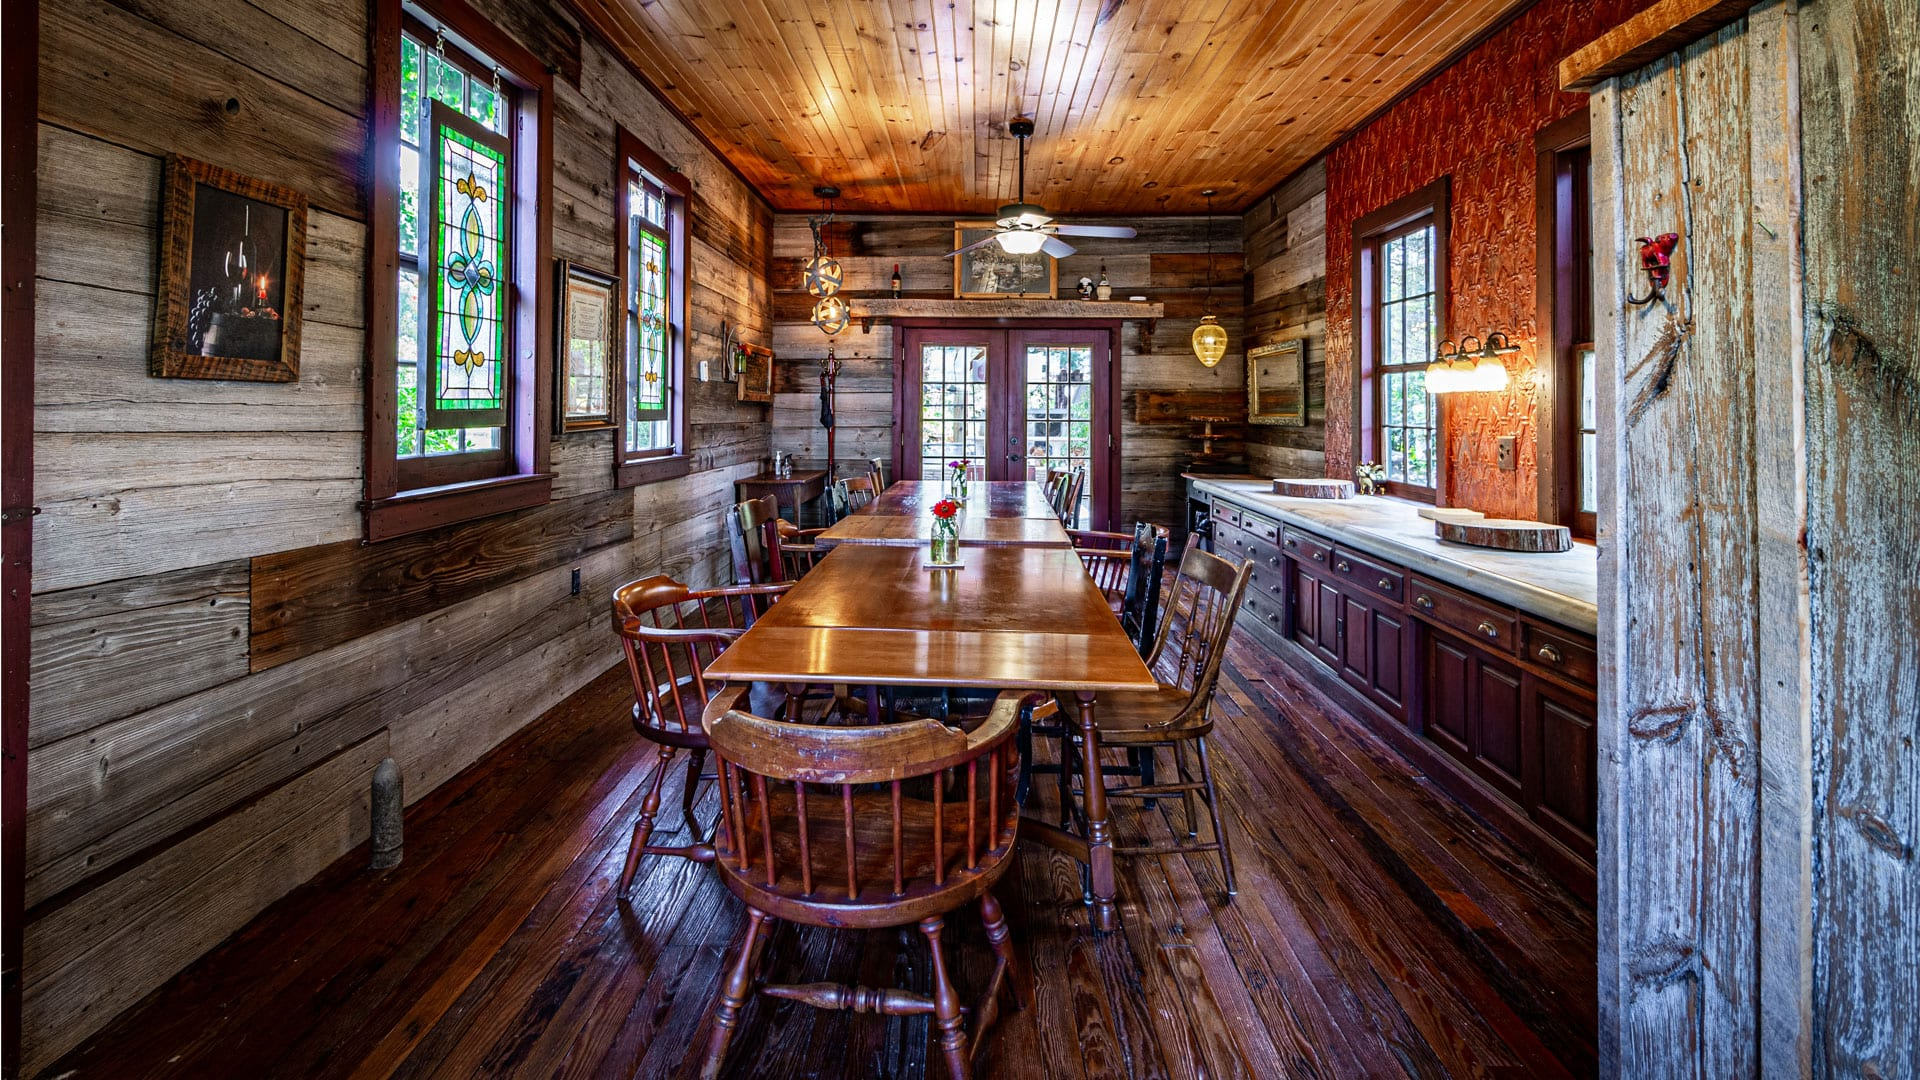 Private Event Spaces at Emily's Bed and Breakfast in the Hazleton Area